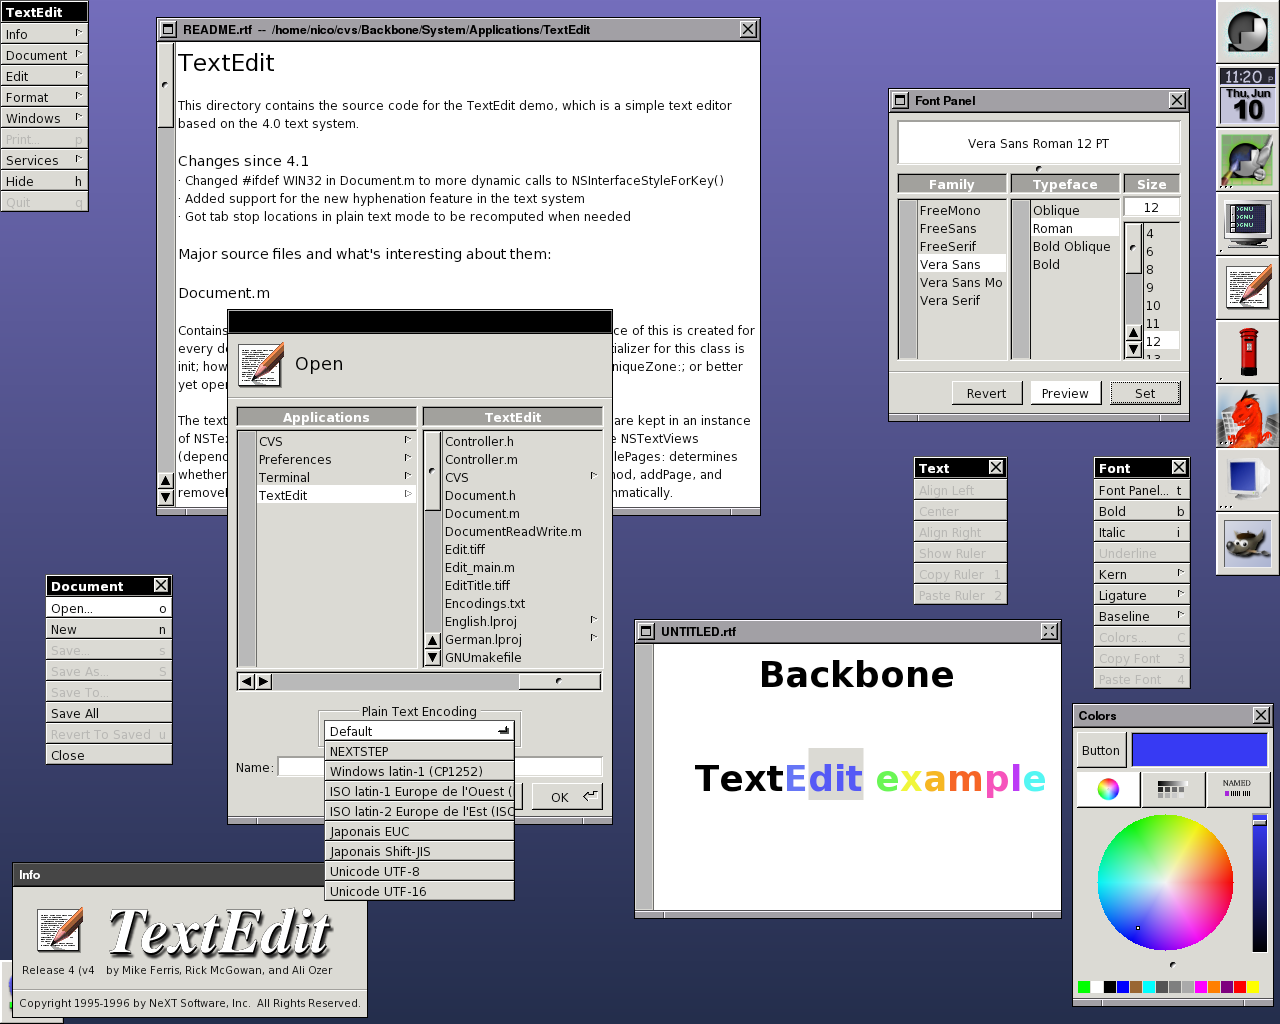 how to call datagridview textbox textchanged event in vb net